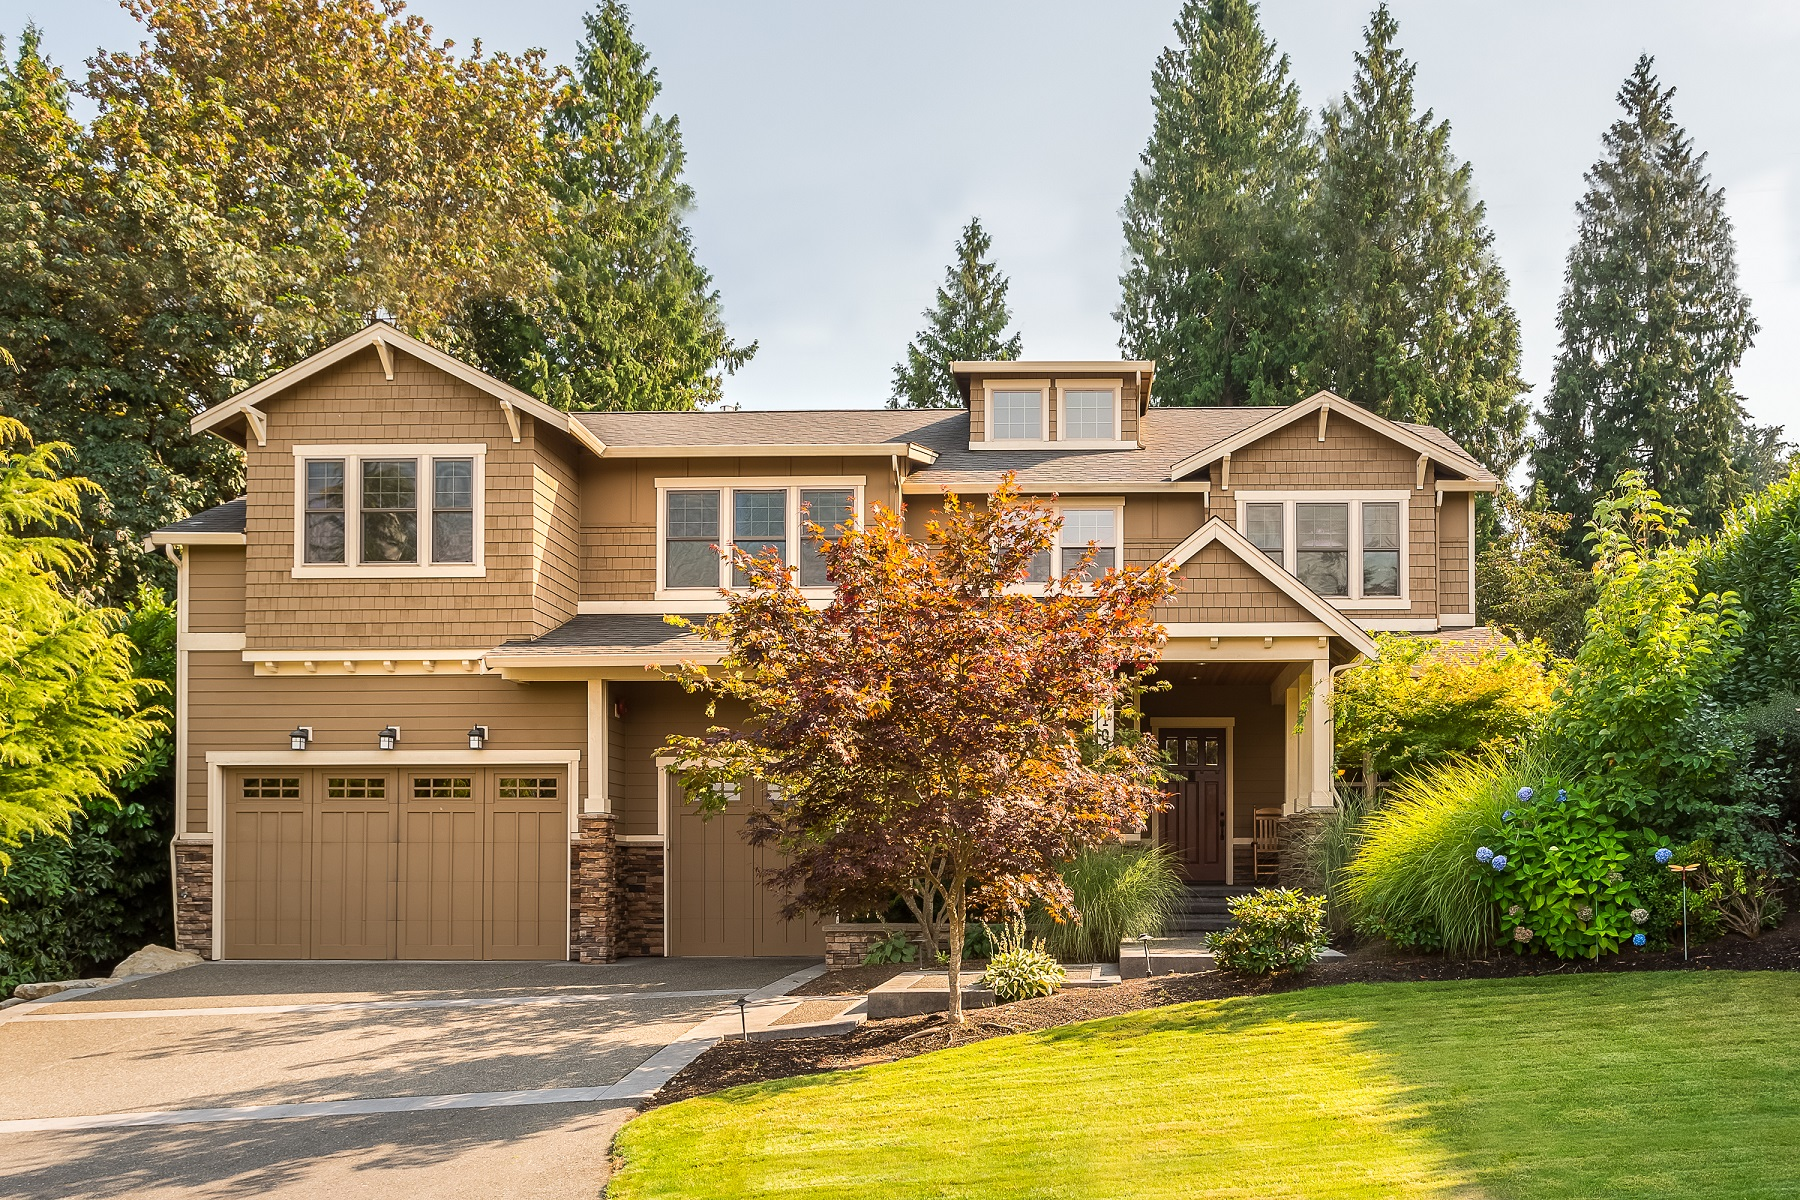 Single Family Home for Sale at Custom Estate in Clyde Hill 10023 NE 29th Pl Bellevue, Washington 98004 United States